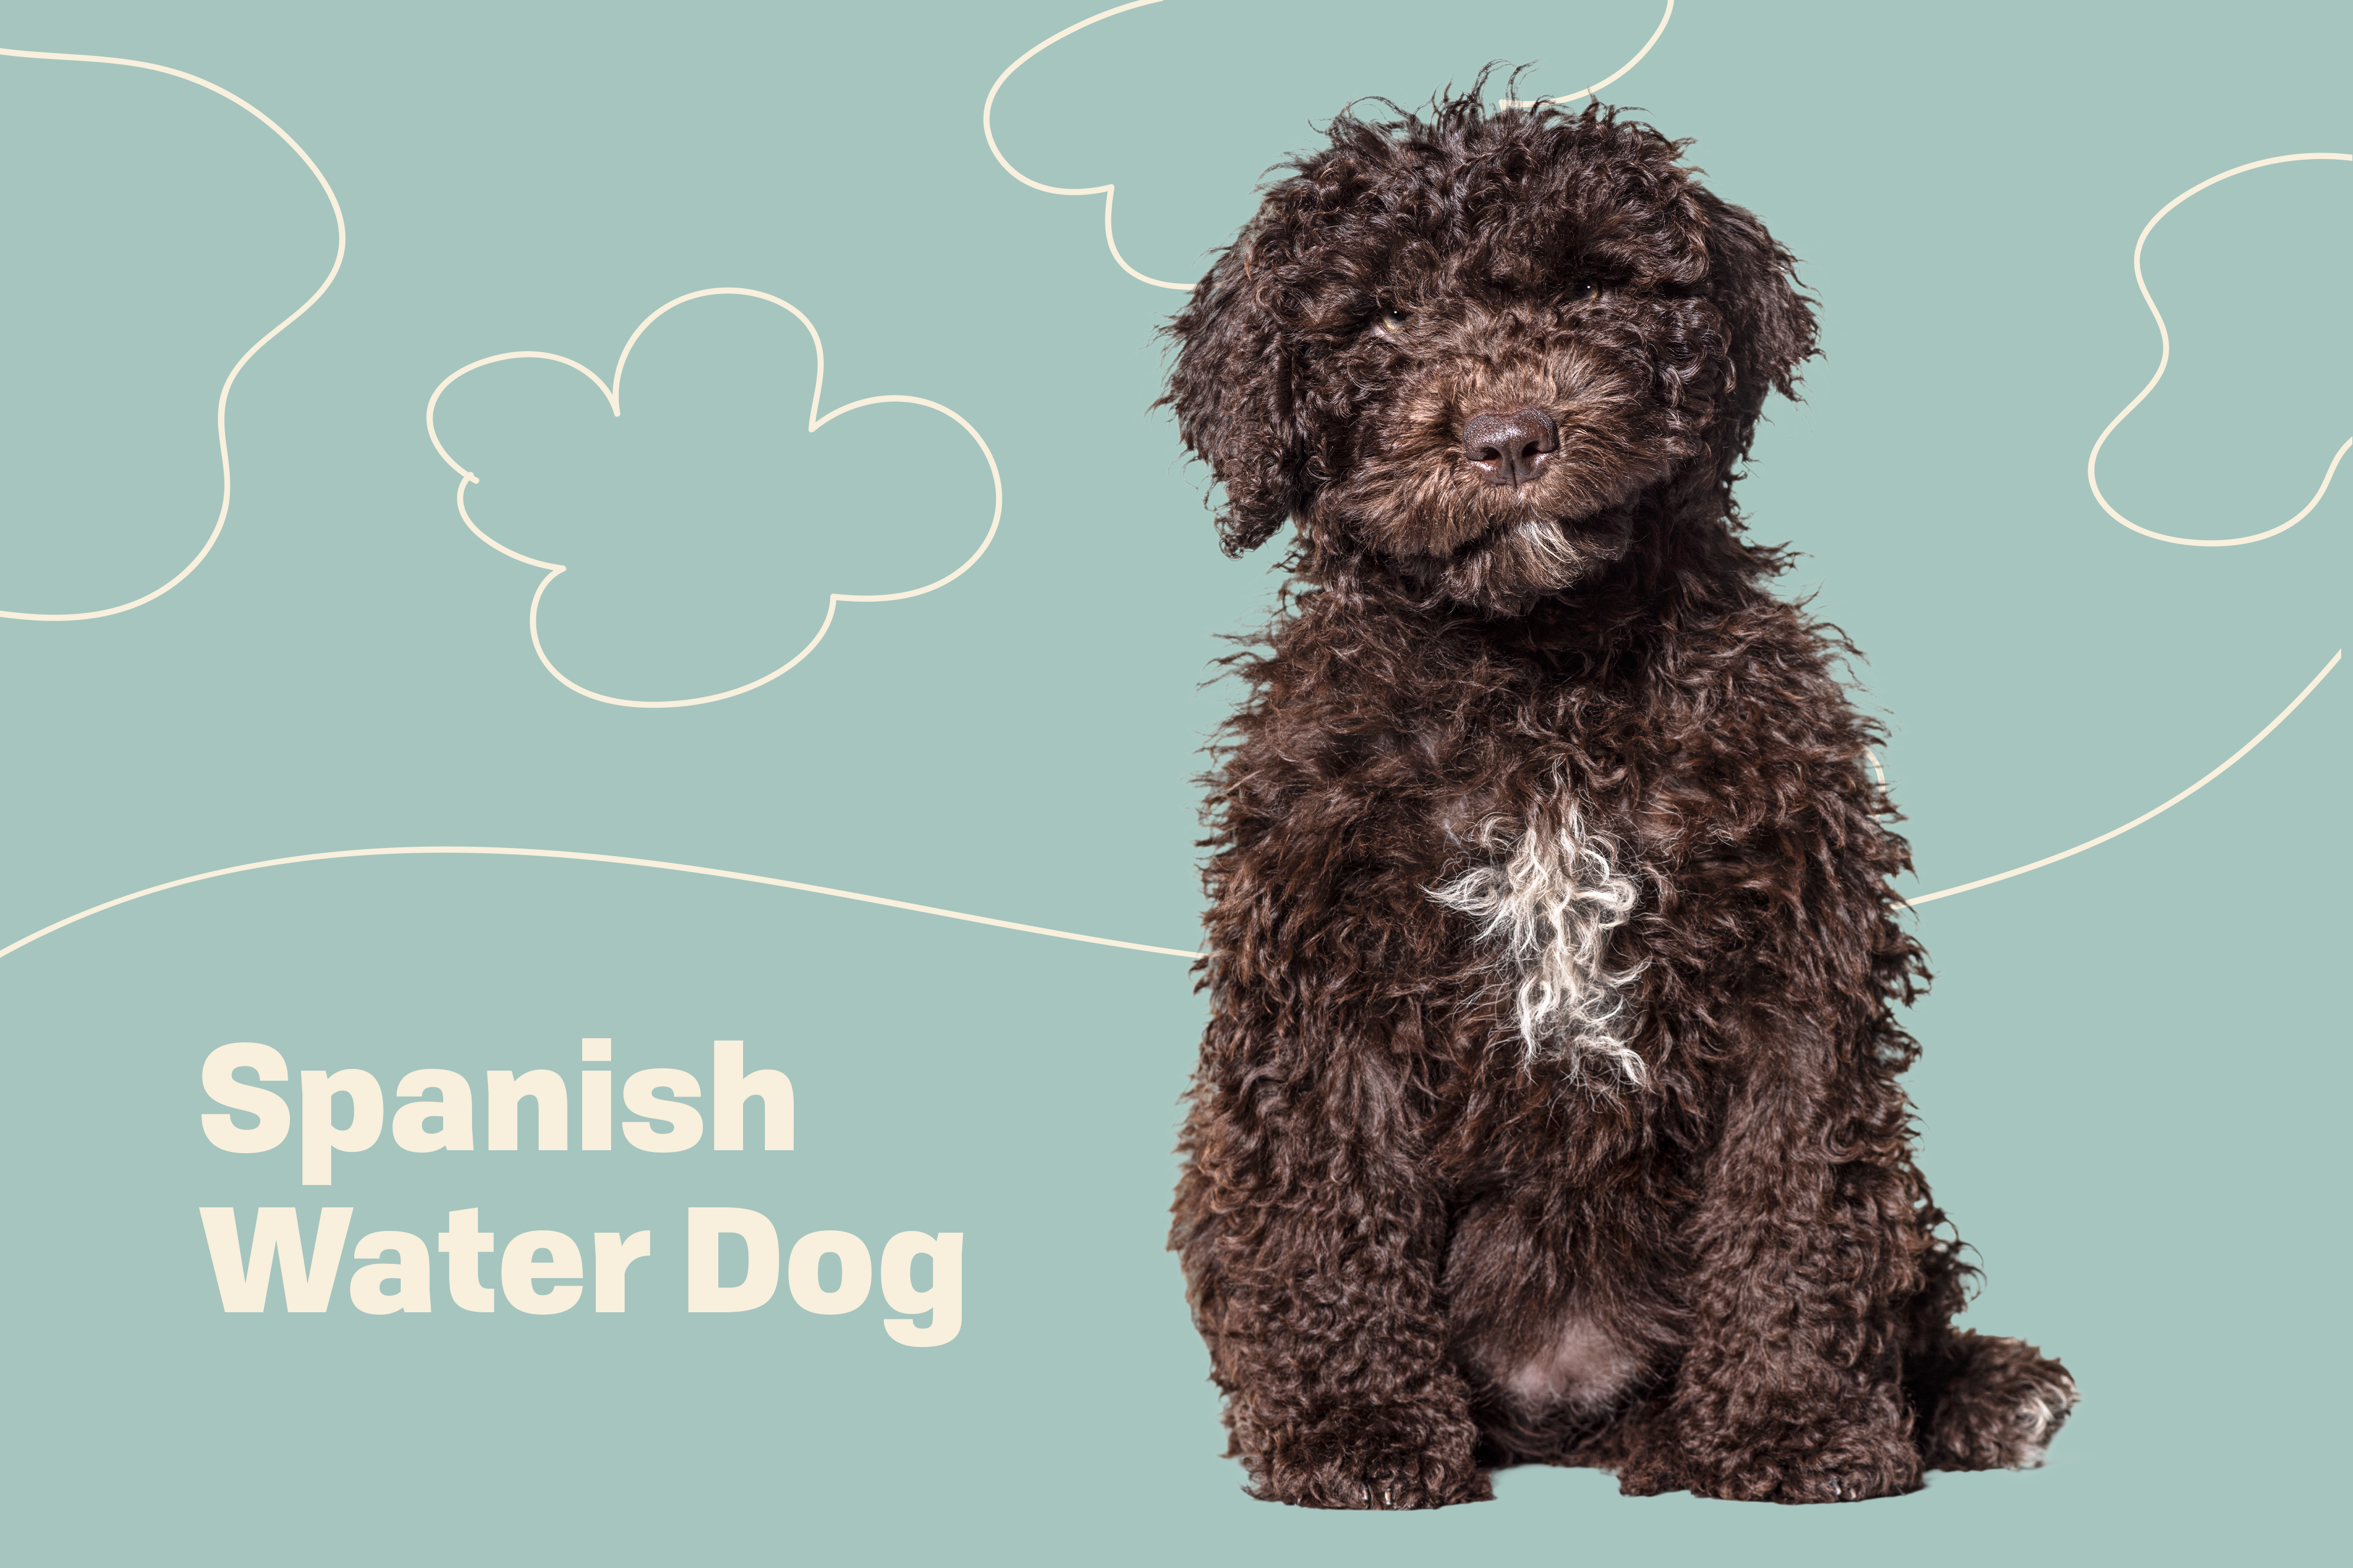 spanish water dog profile treatment blue background with drawings of clouds